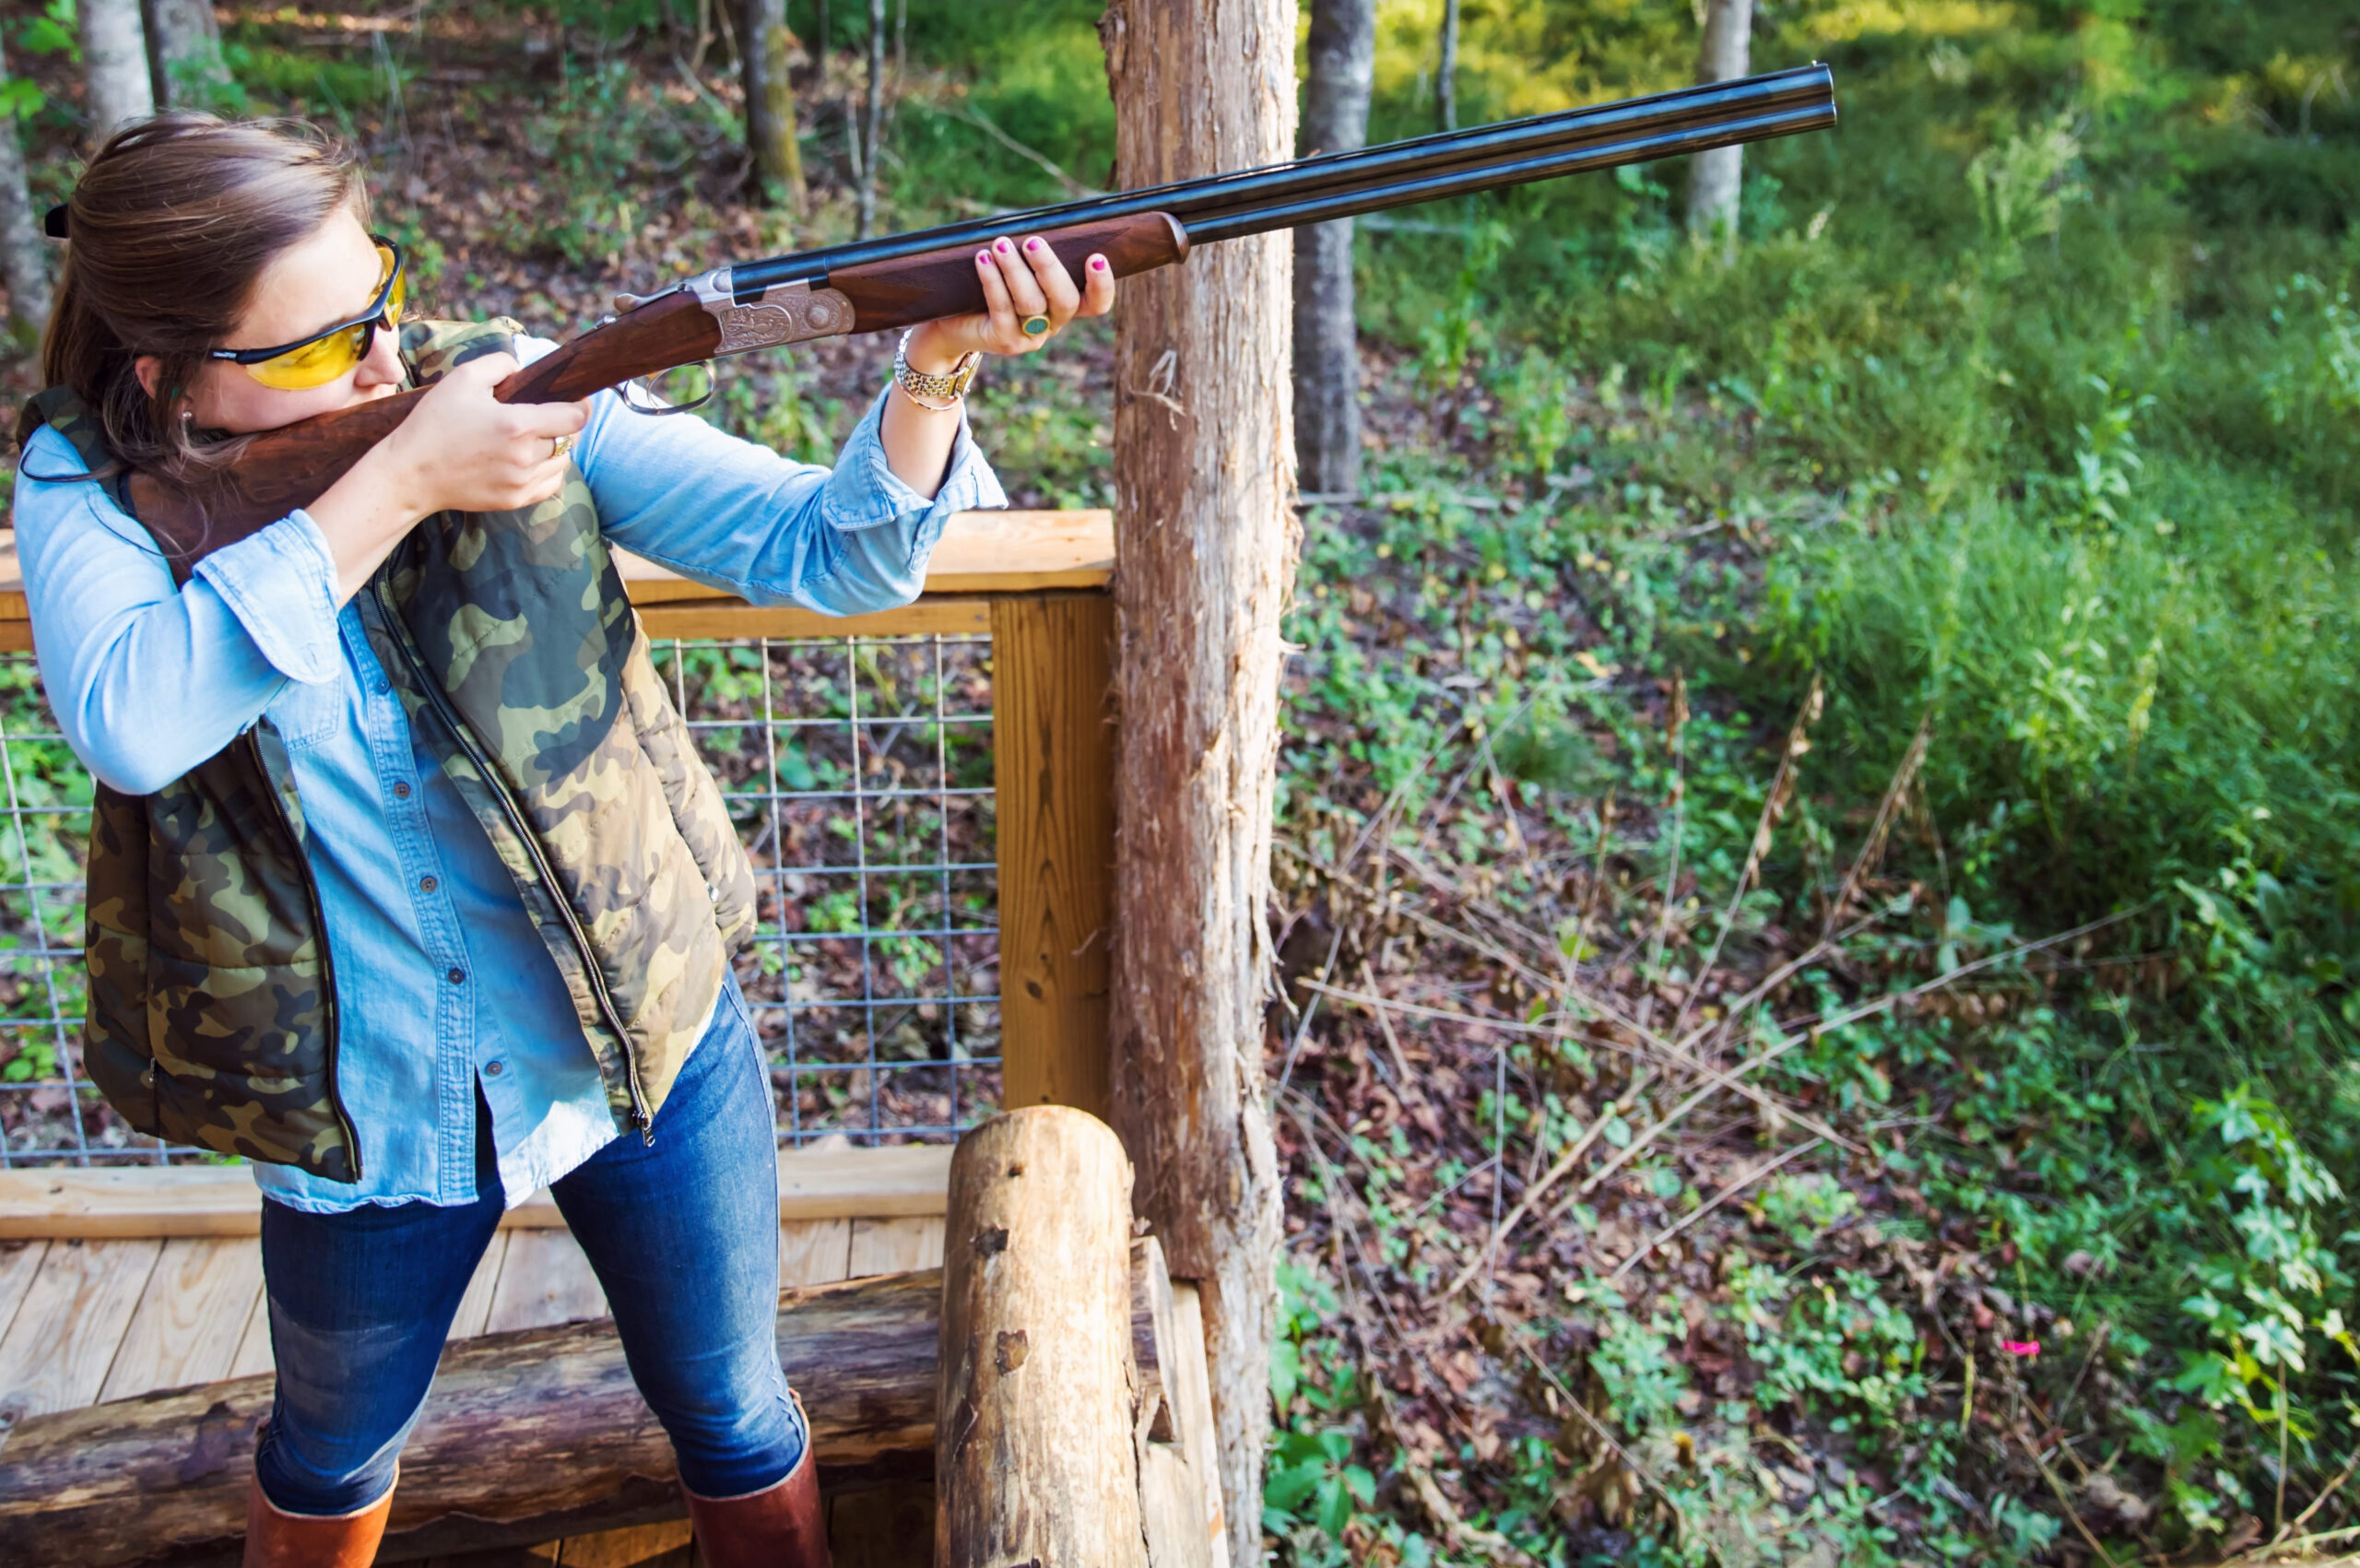 Five stand shotgun sporting clays shooting Charlotte, North Carolina